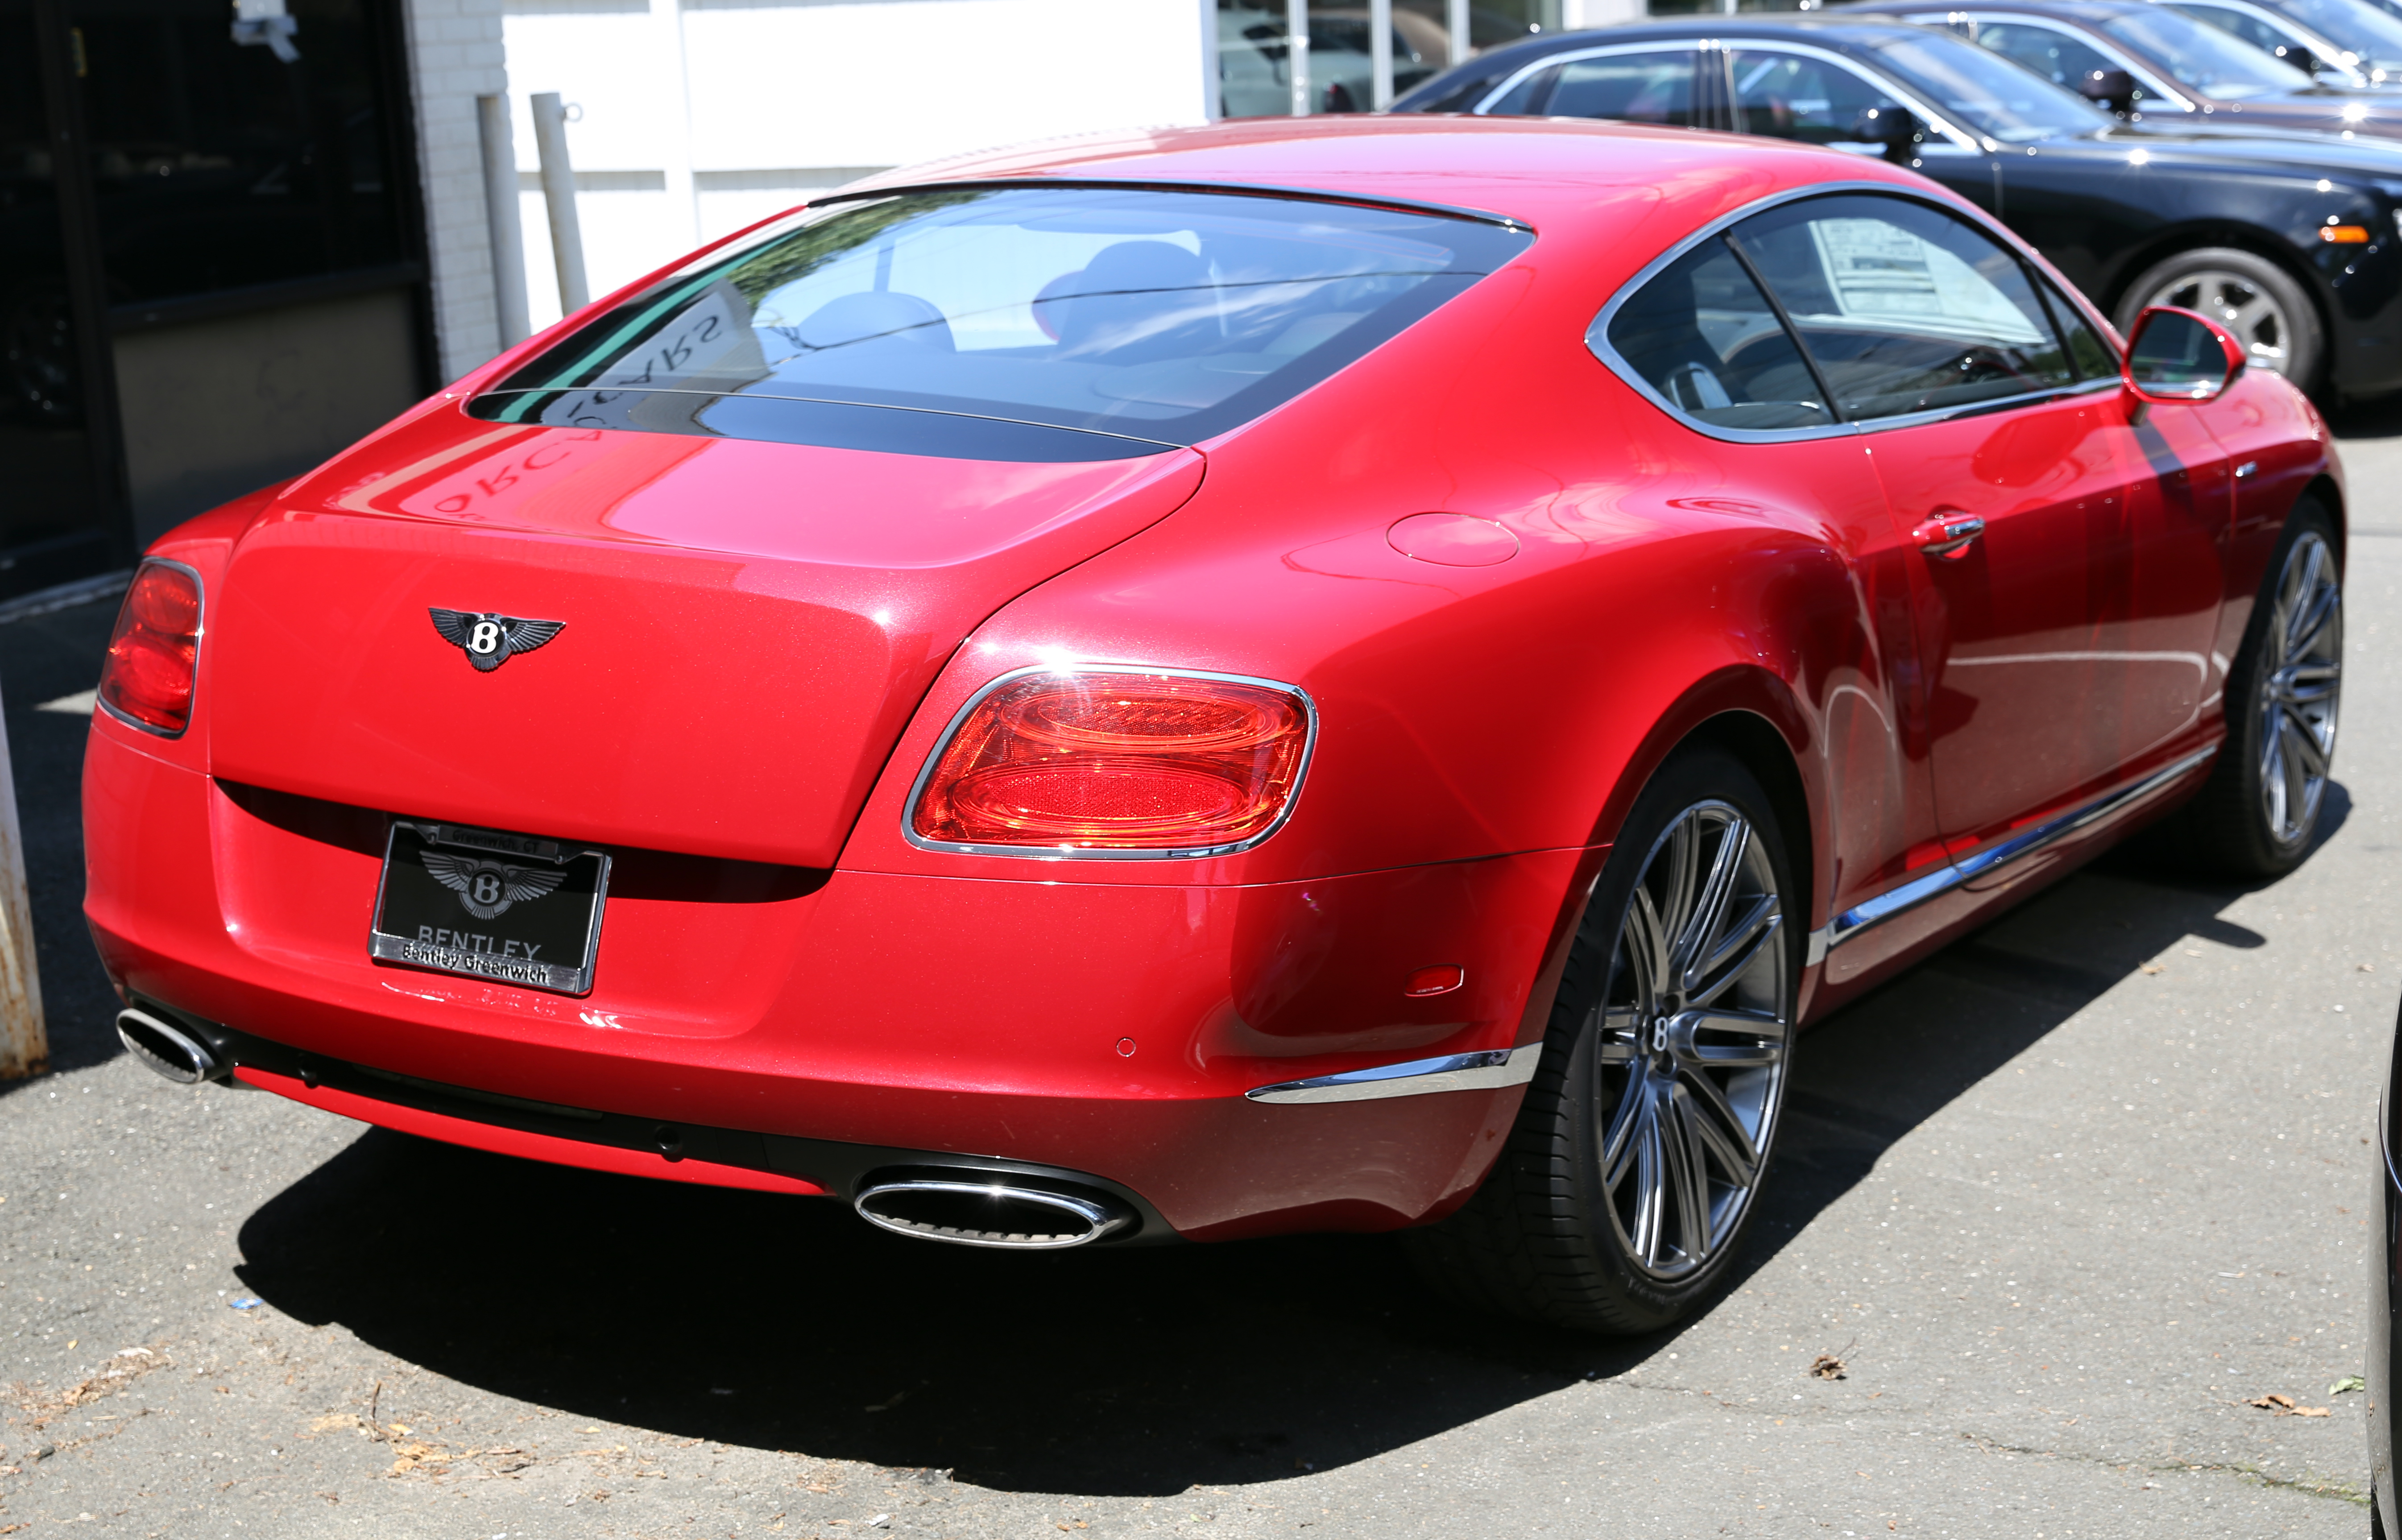 File:2013 Bentley Continental GT Speed, Dragon Red.jpg - Wikimedia ...